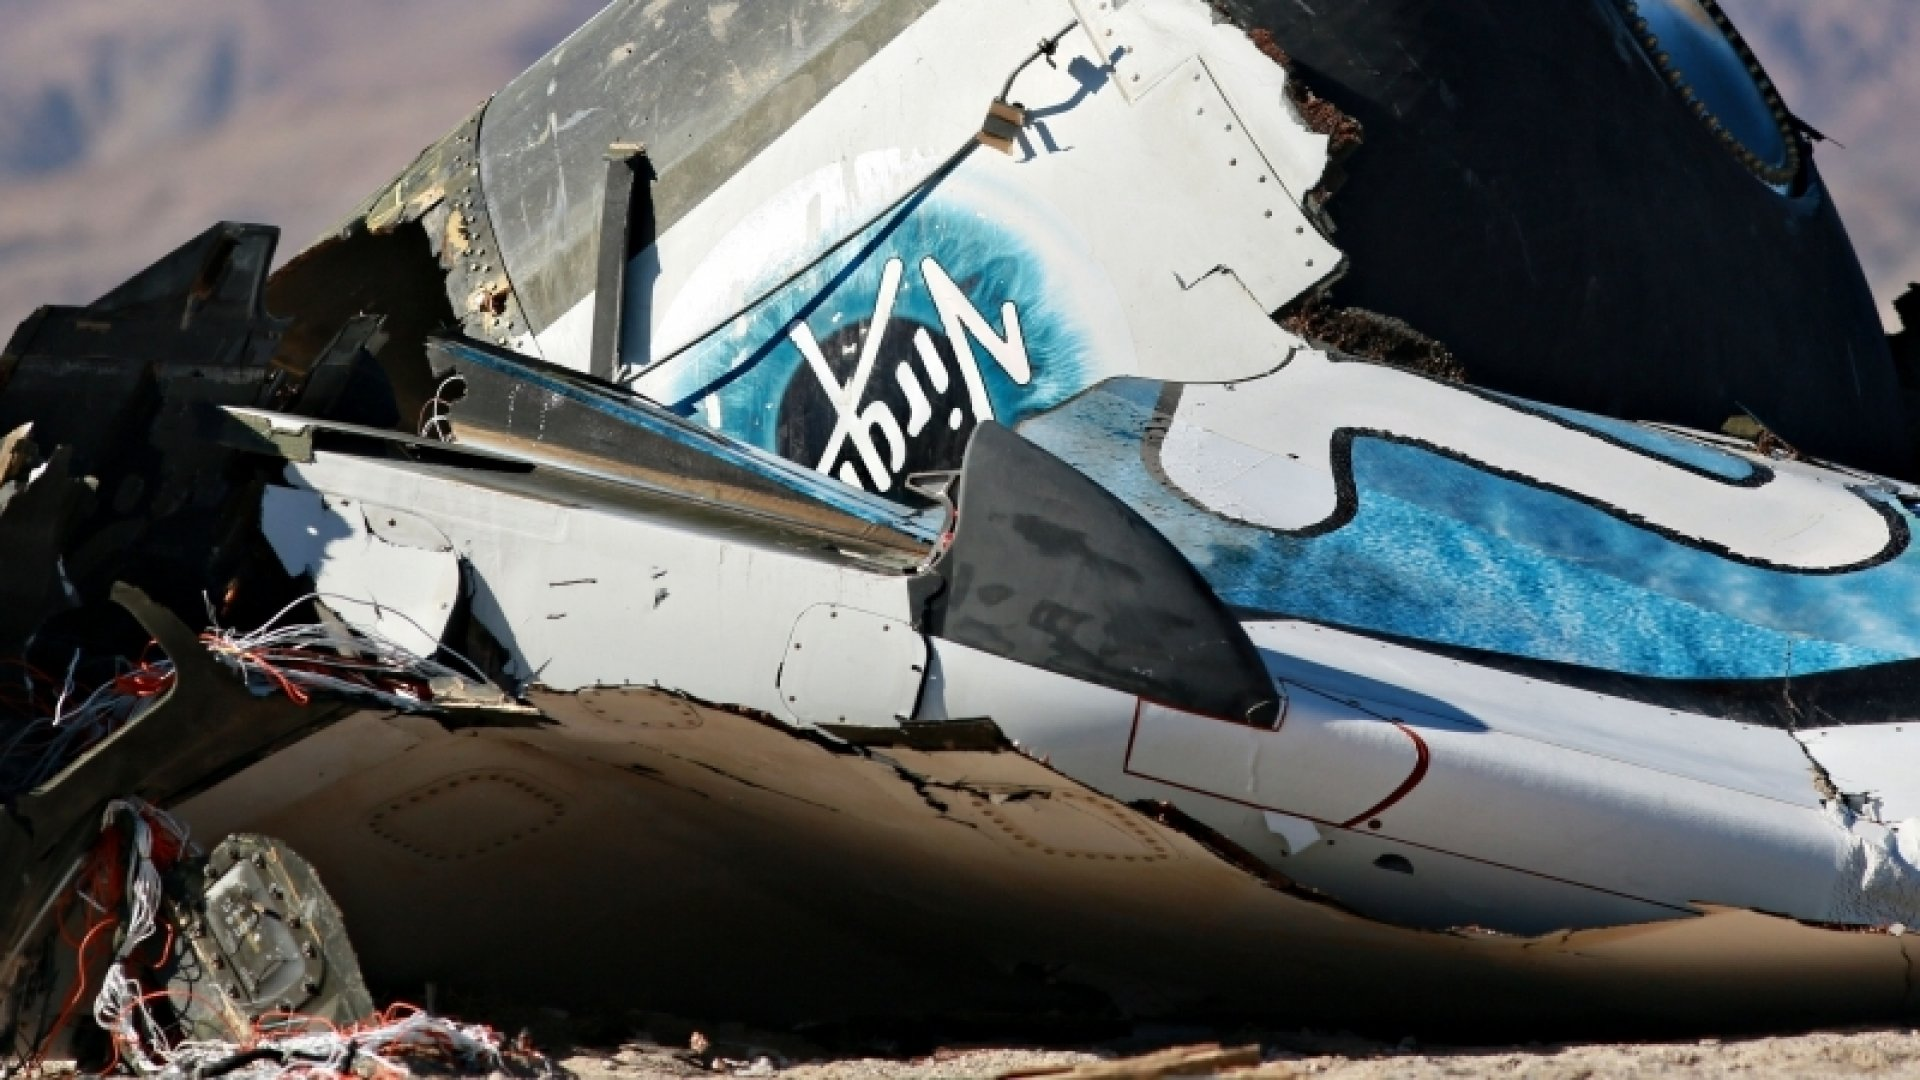 4 Lessons From the Virgin Galactic Disaster